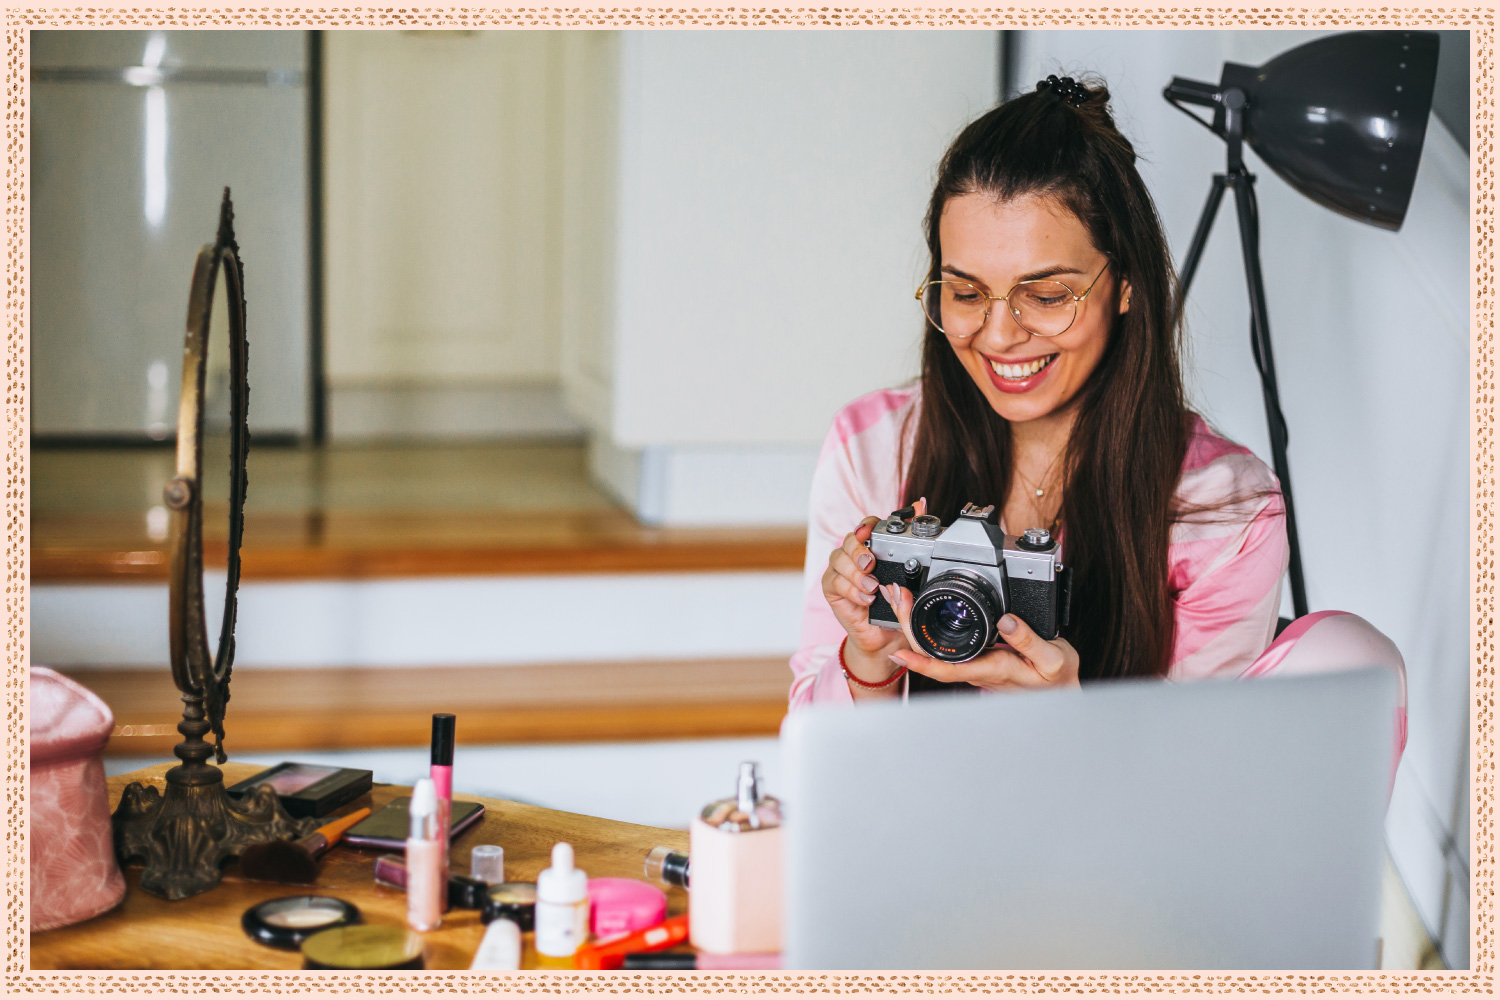 woman smiling at camera in front of vanity with laptop on